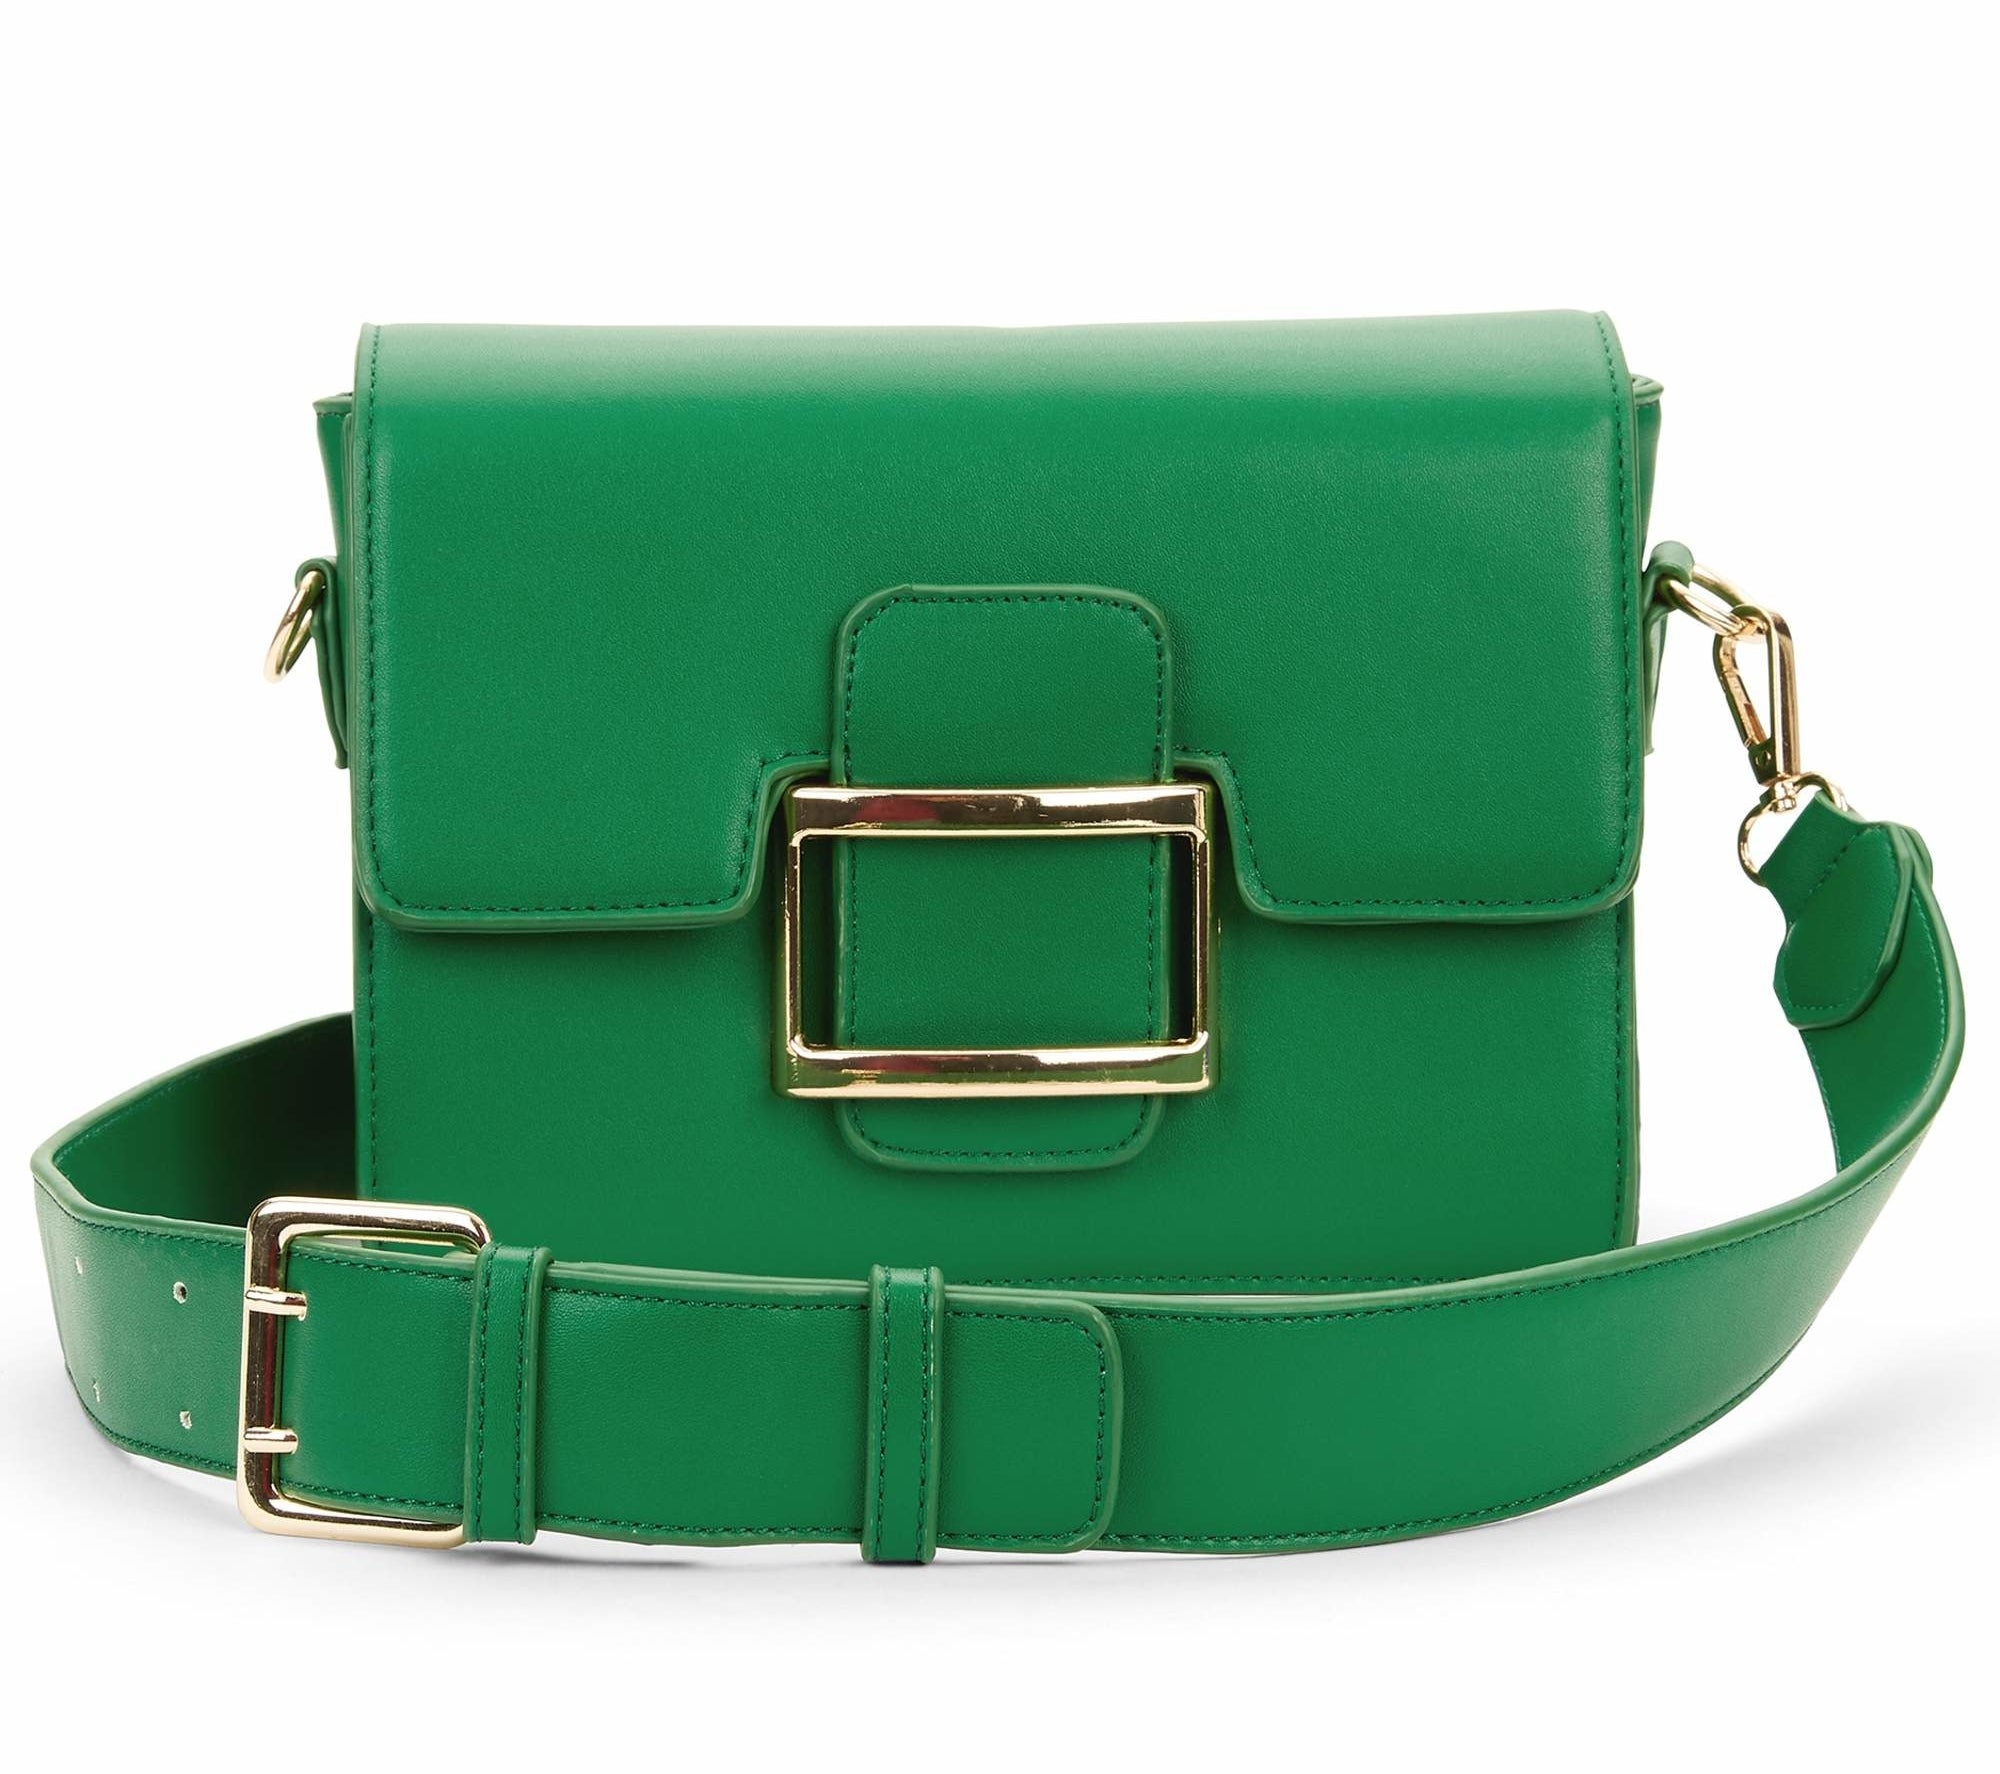 The small green bag with gold buckle